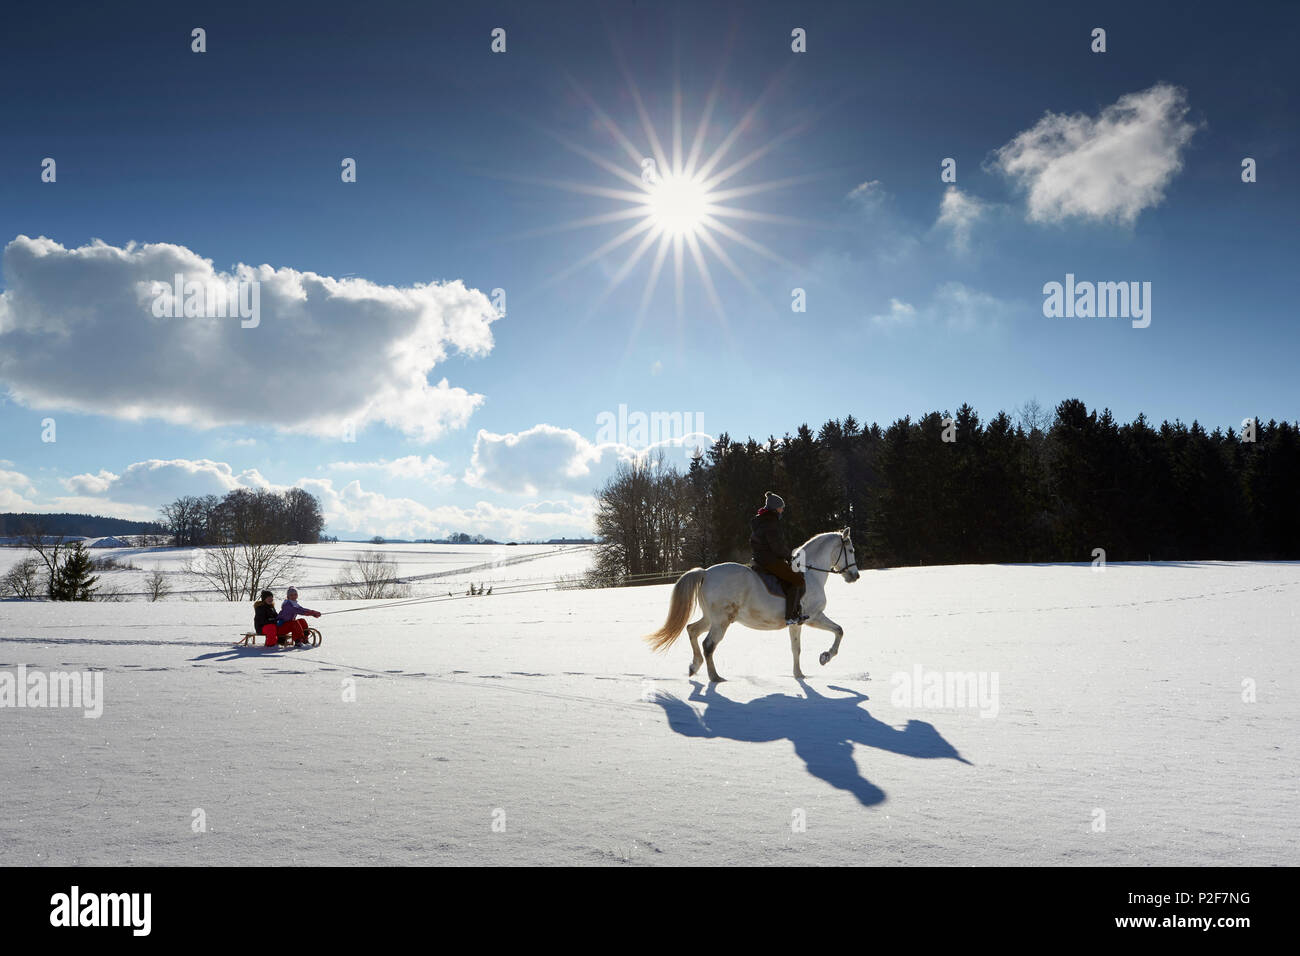 Mother on horse pulling children on sledge, Buchensee, Muensing, Bavaria Germany - Stock Image